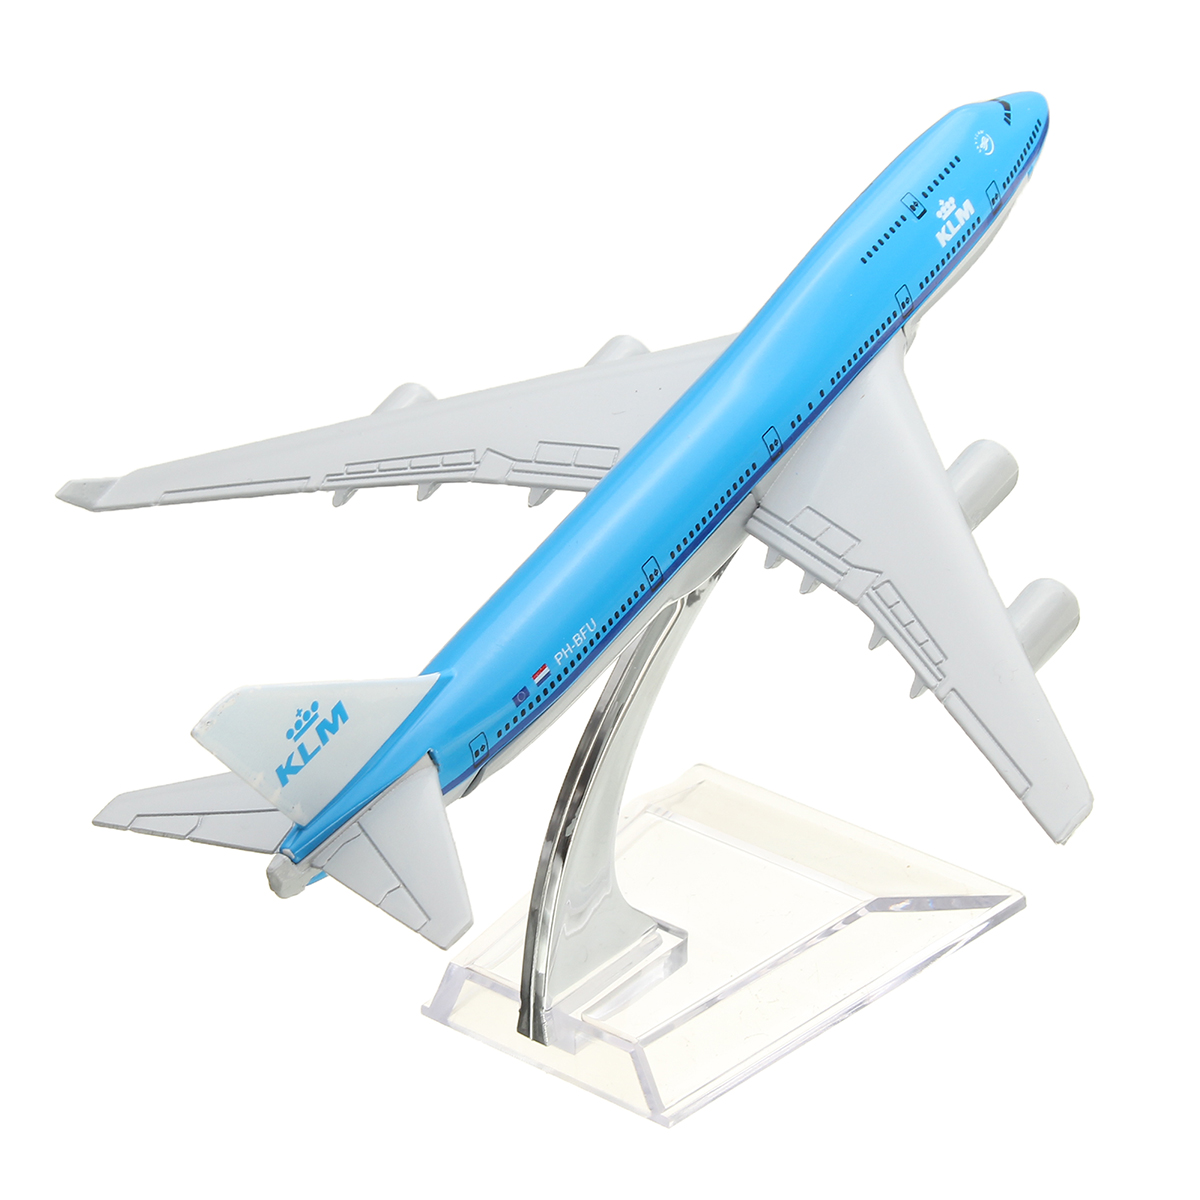 NEW 16cm Airplane Metal Plane Model Aircraft B747 KLM A